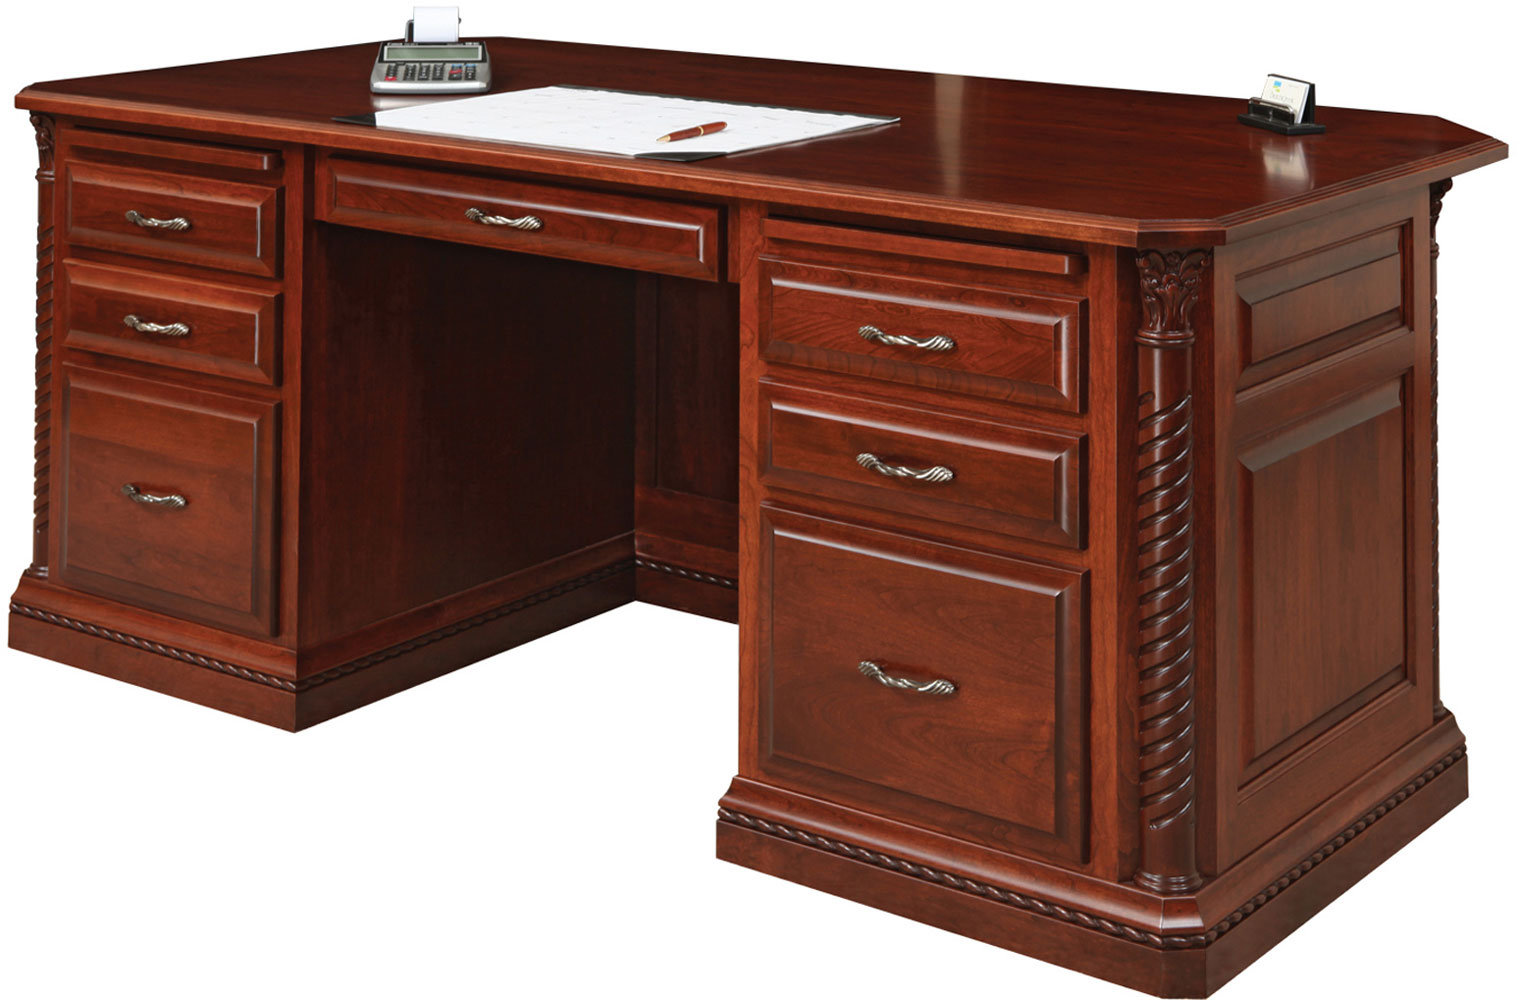 Charmant Lexington Series Executive Desk Shown In Cherry With OCS Acres Stain